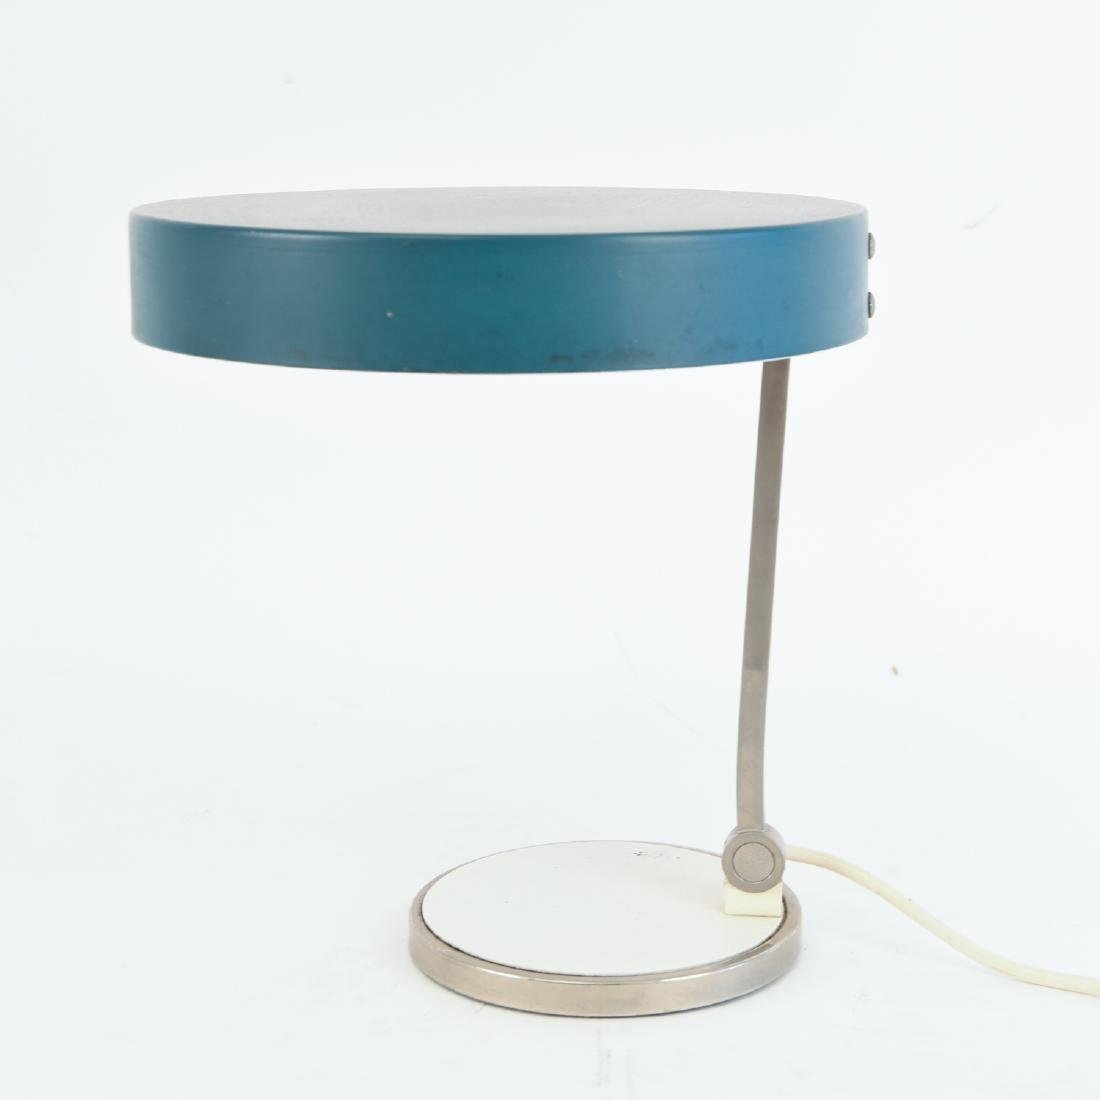 MID CENTURY ARTICULATING TABLE LAMP